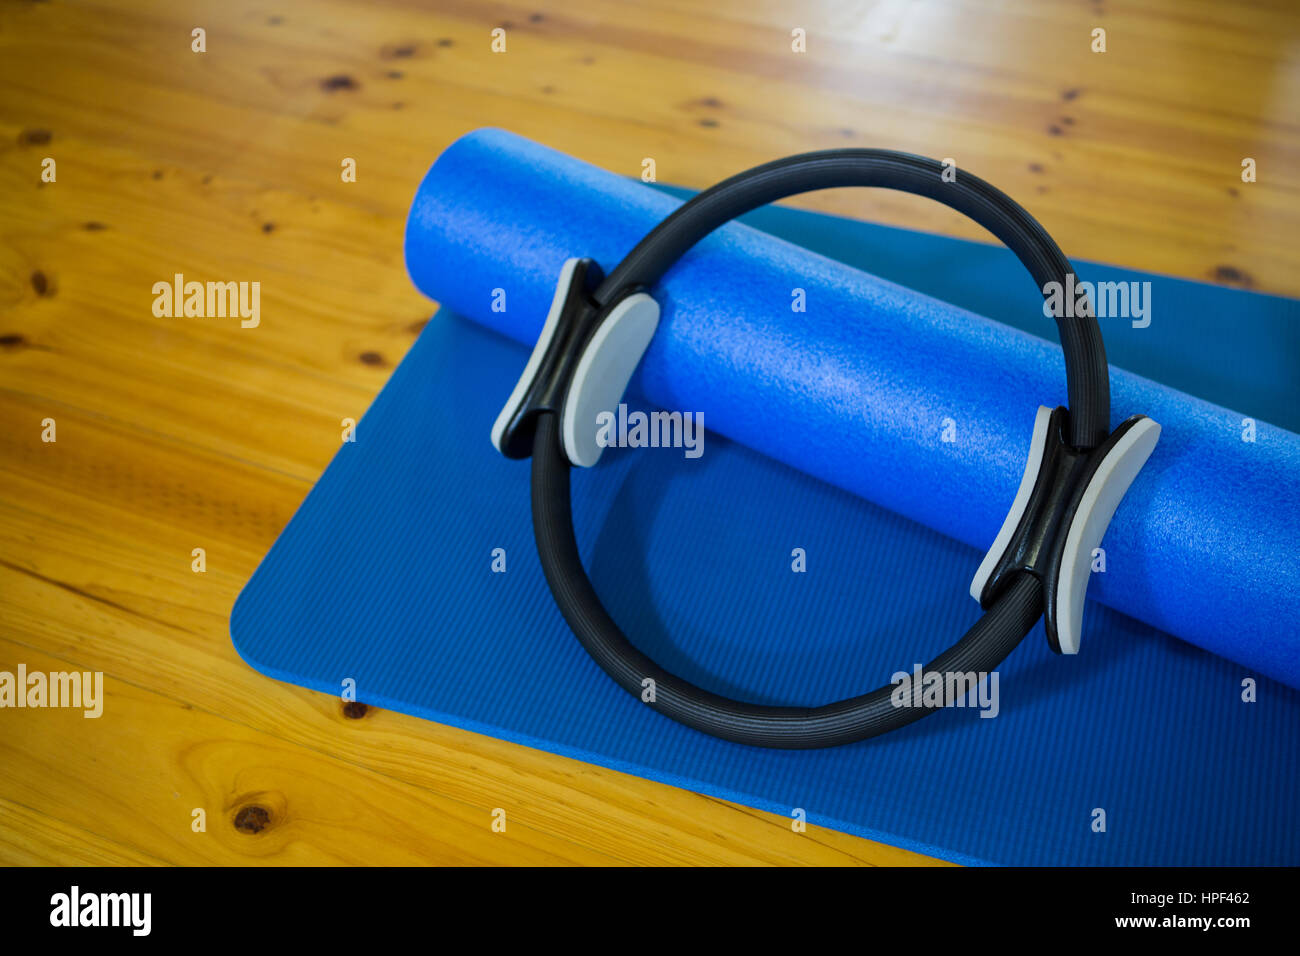 Pilates ring and exercise mat kept on wooden floor in fitness center - Stock Image